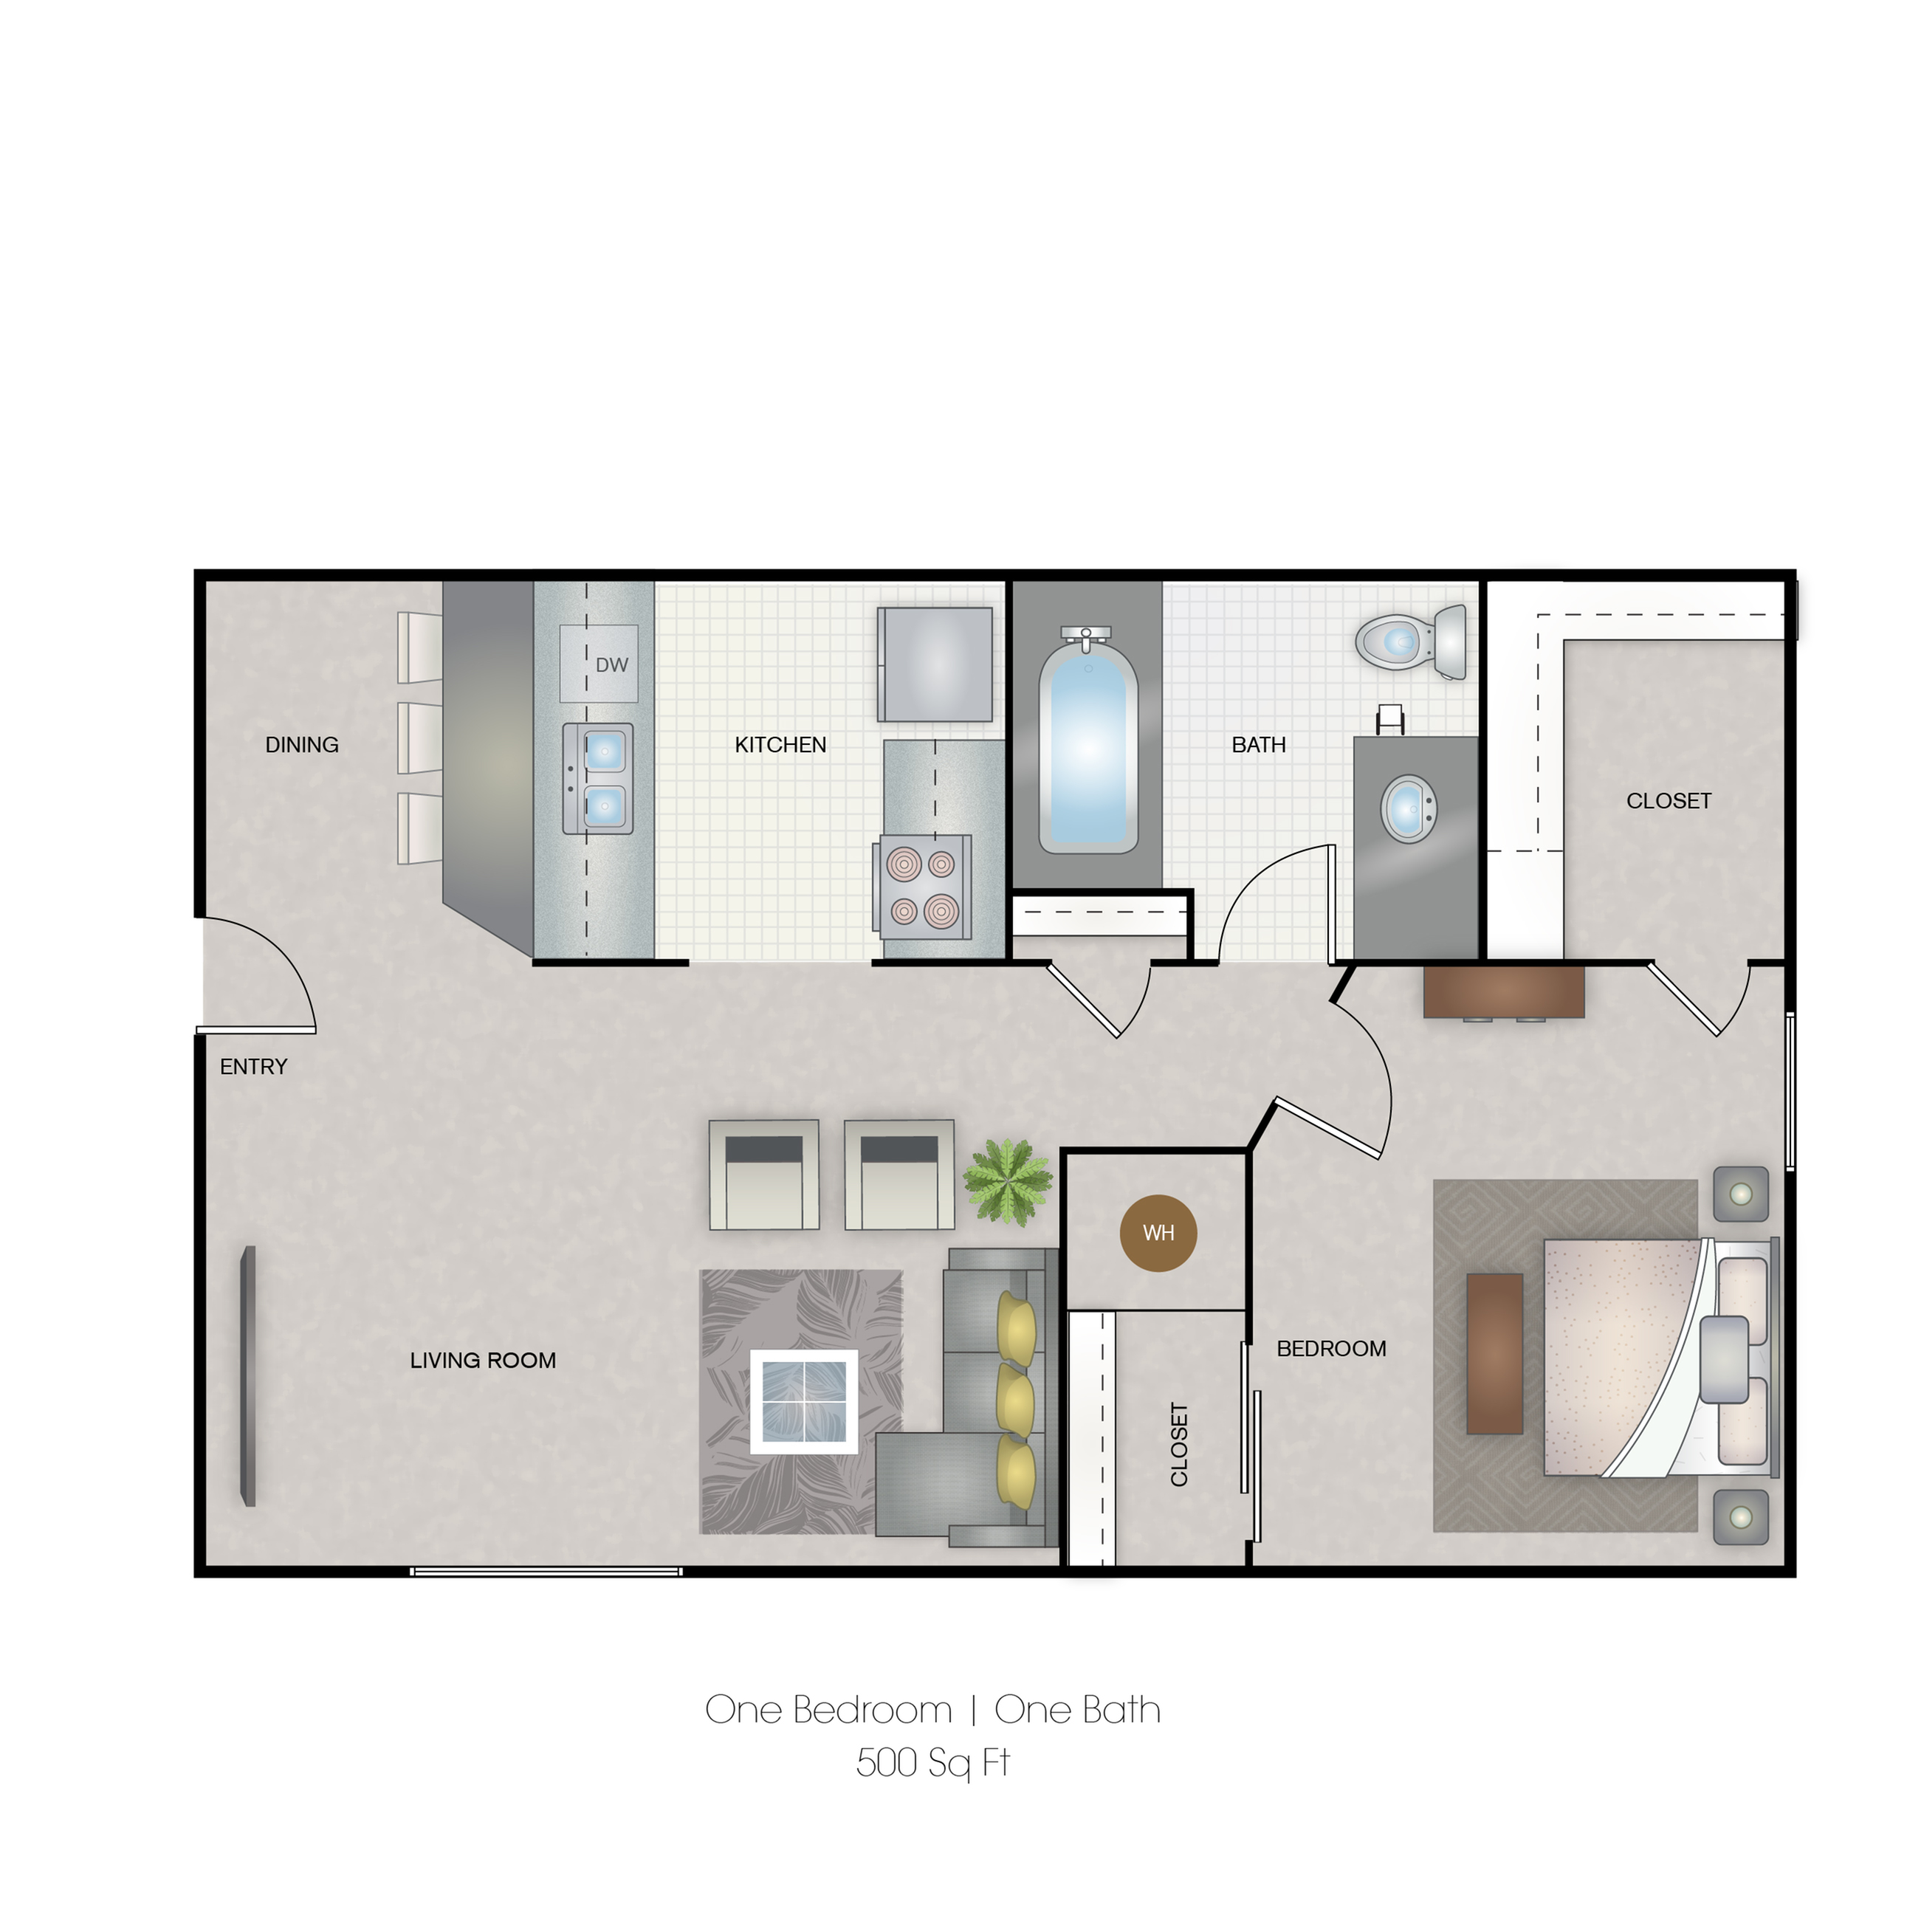 Small one bedroom 500 Sq-ft